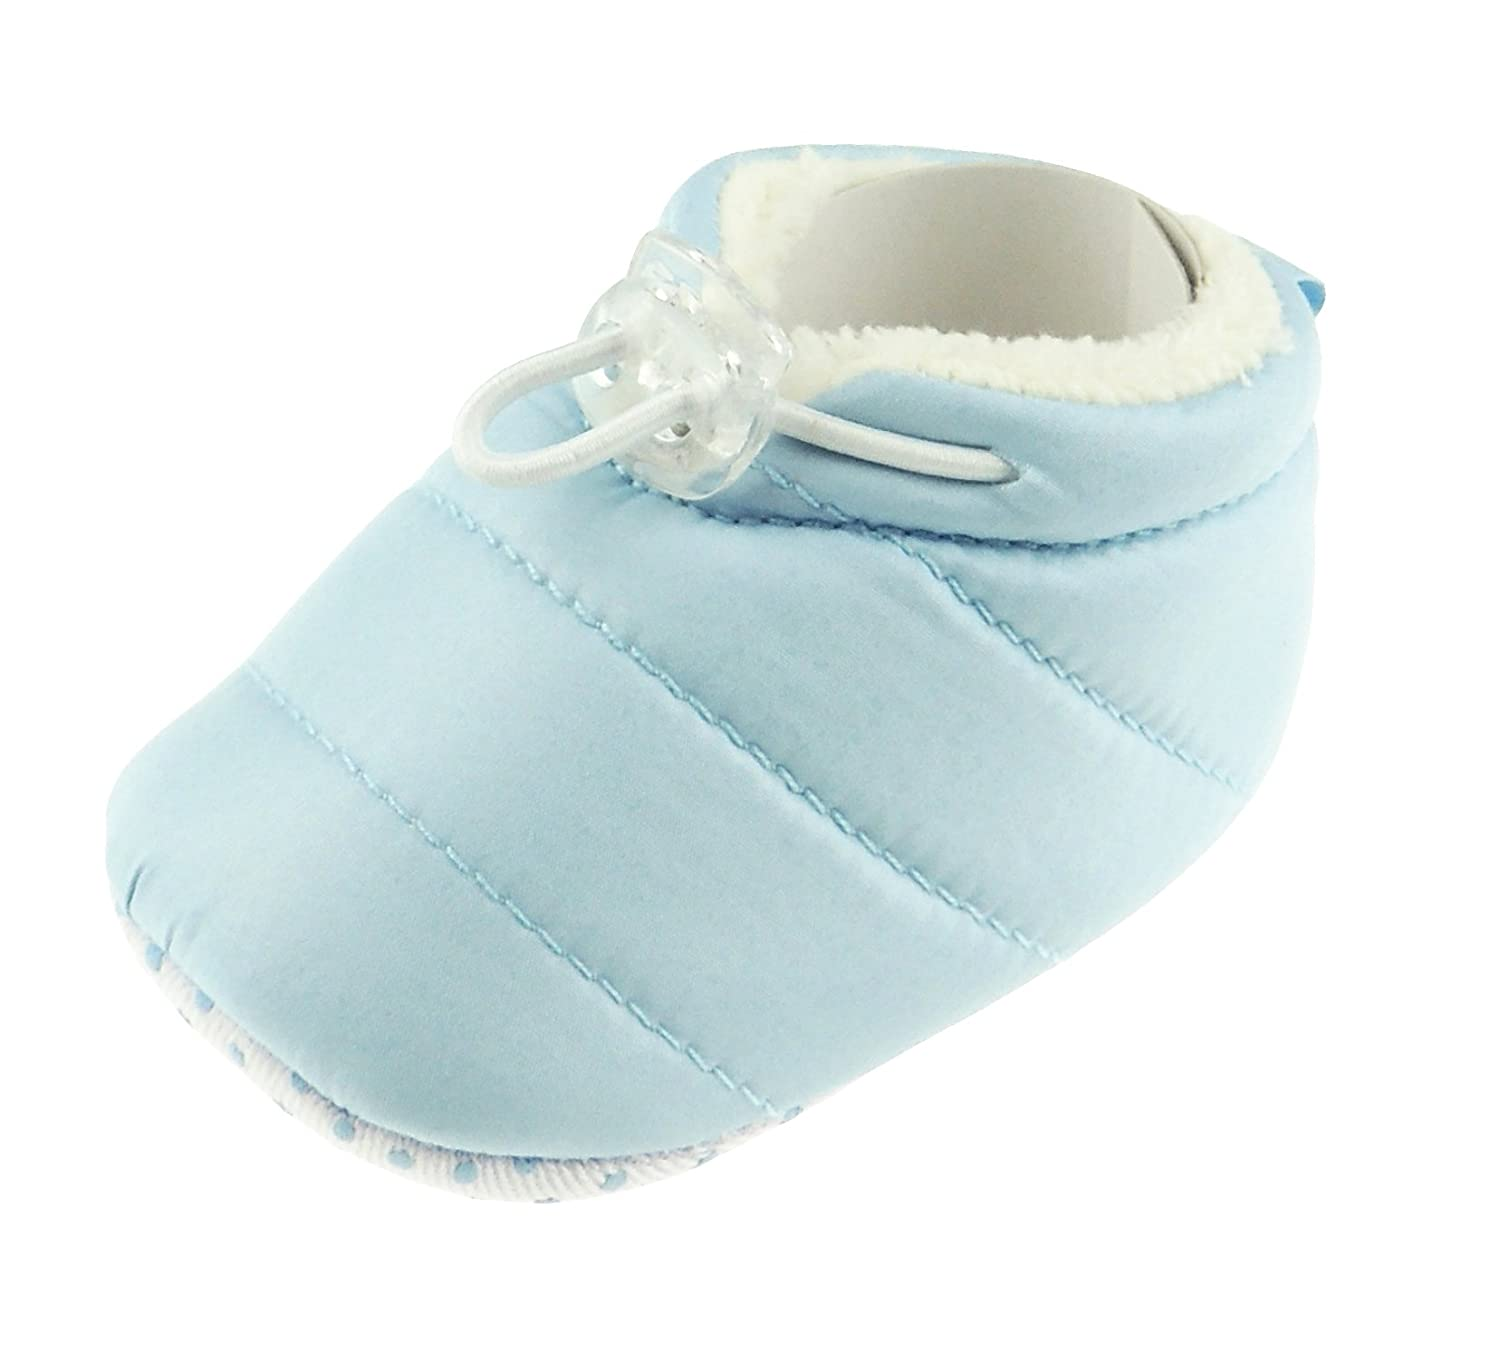 Baby Booties 6-12 months corduroy boy girl shoe slipper padder shoe non-skid